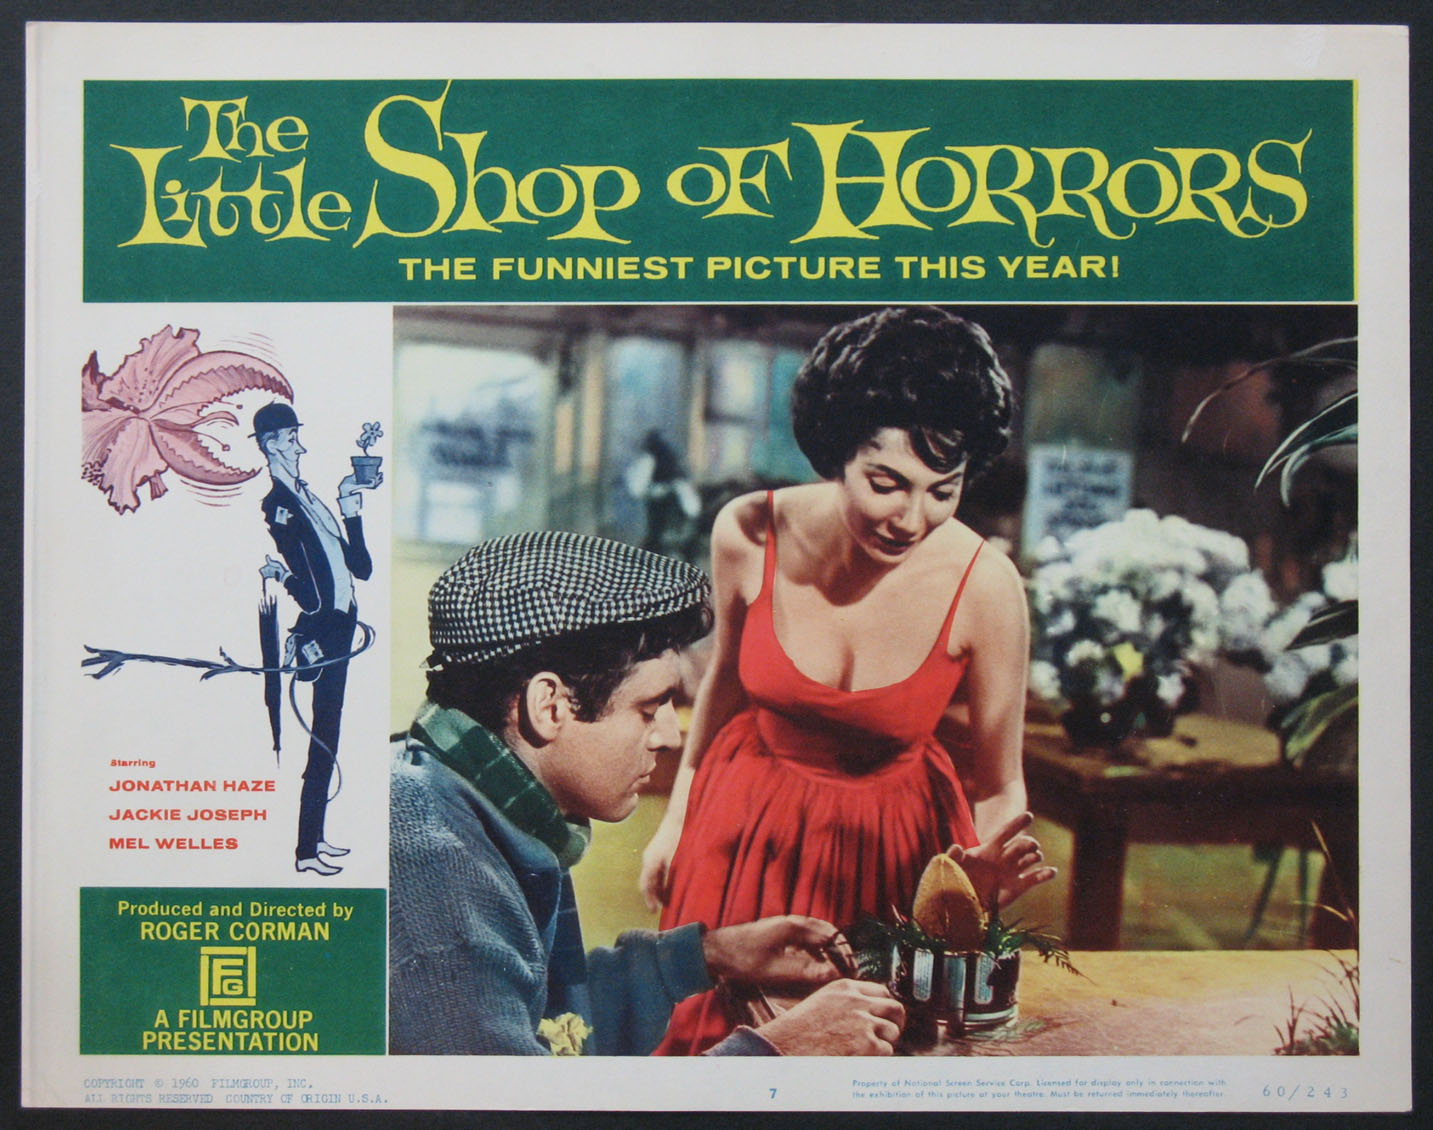 LITTLE SHOP OF HORRORS @ FilmPosters.com